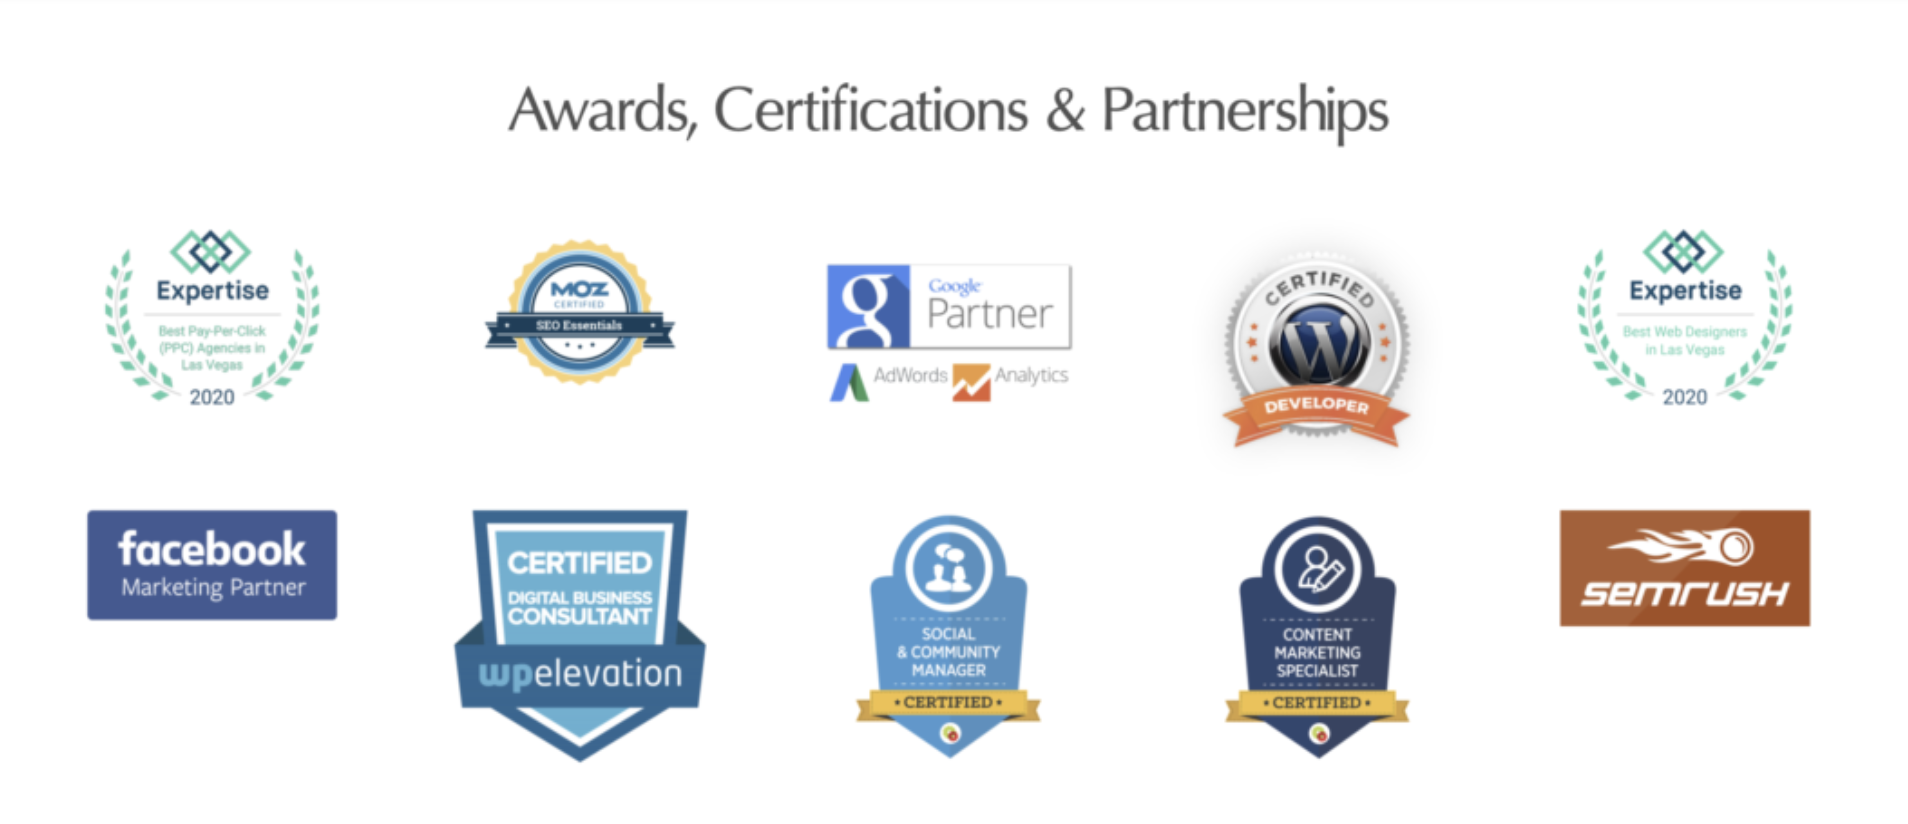 THE ROJAS GROUP AWARDS AND CERTIFICATIONS